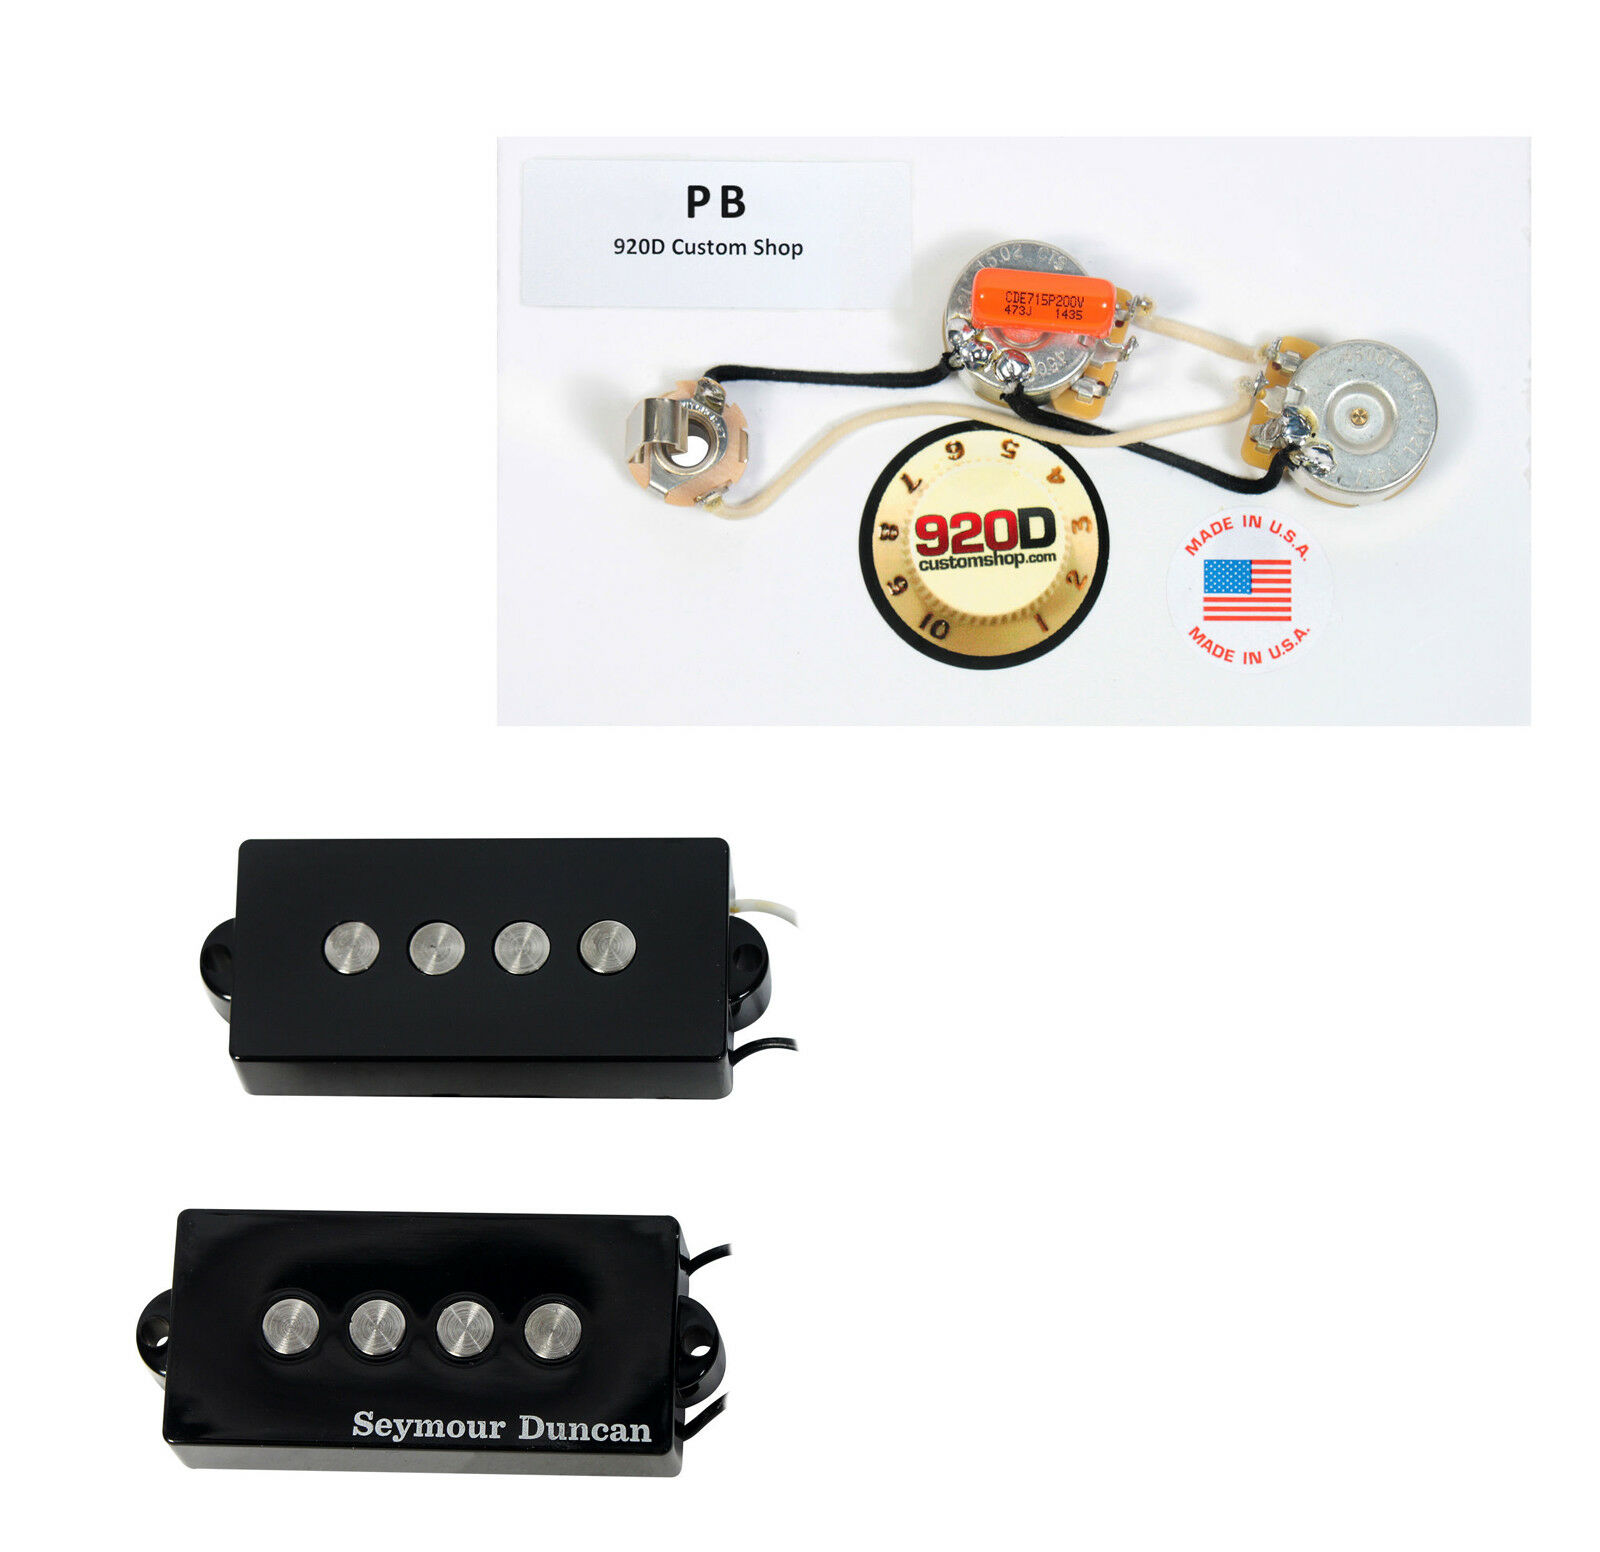 Seymour Duncan Spb 3 Fender P Bass Guitar Pickup Black Wiring A Harness 1 Of 4only Available See More